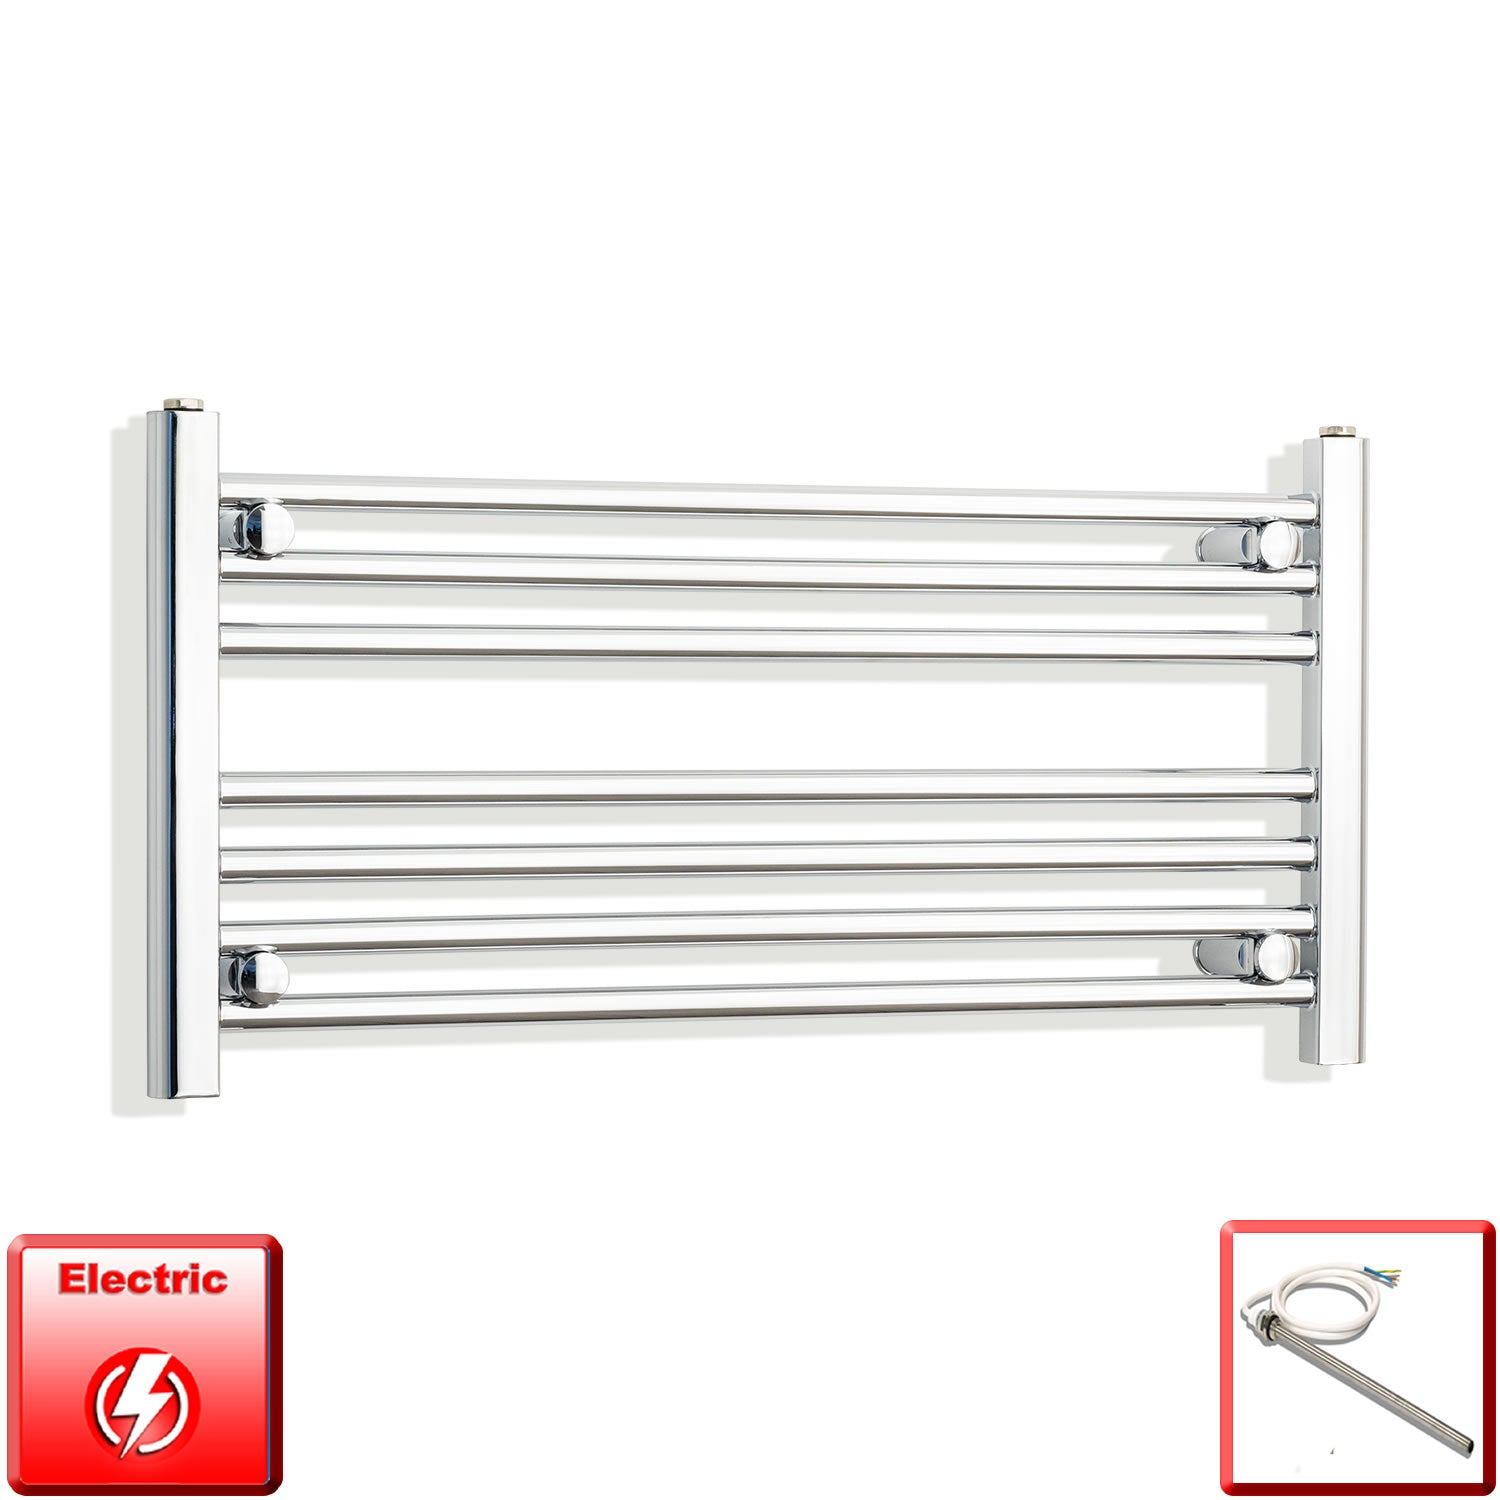 850mm Wide 400mm High Pre-Filled Chrome Electric Towel Rail Radiator With Single Heat Element